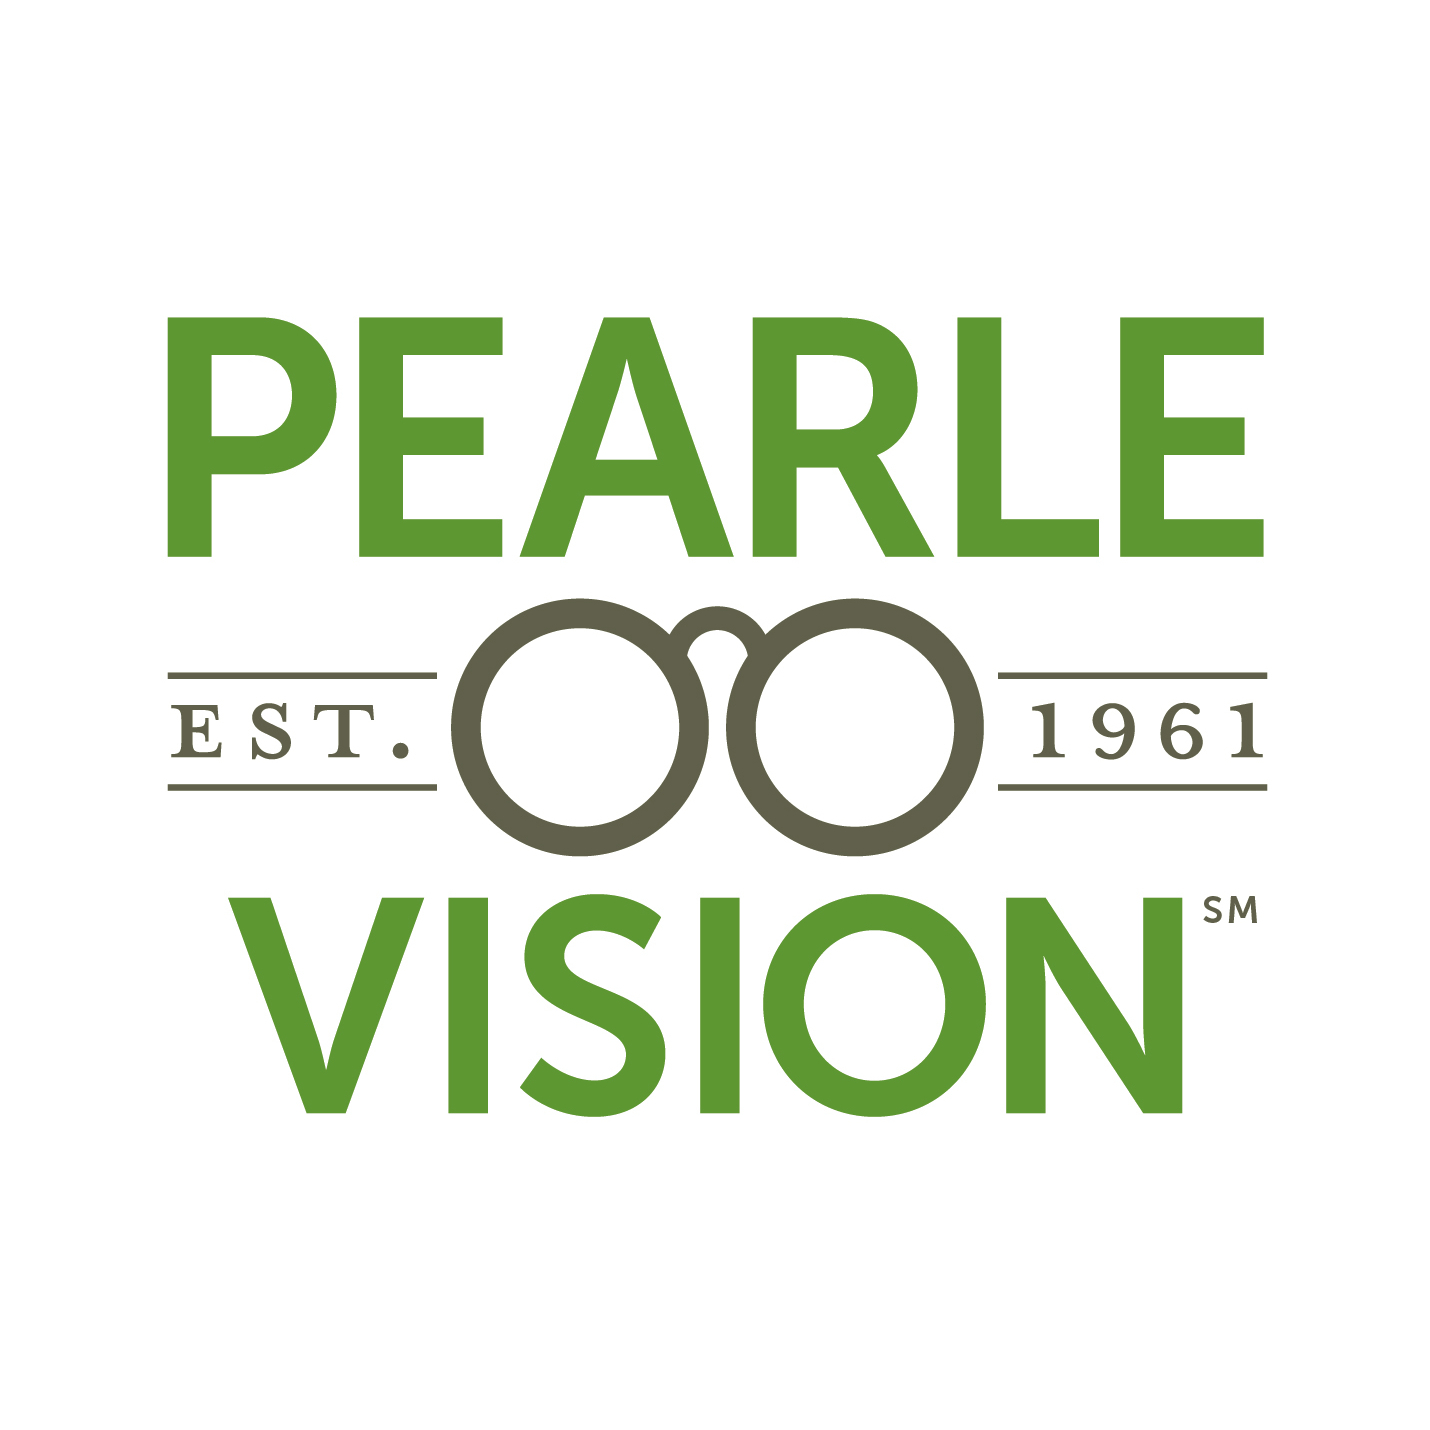 Pearle Vision - Easton, PA - Optometrists